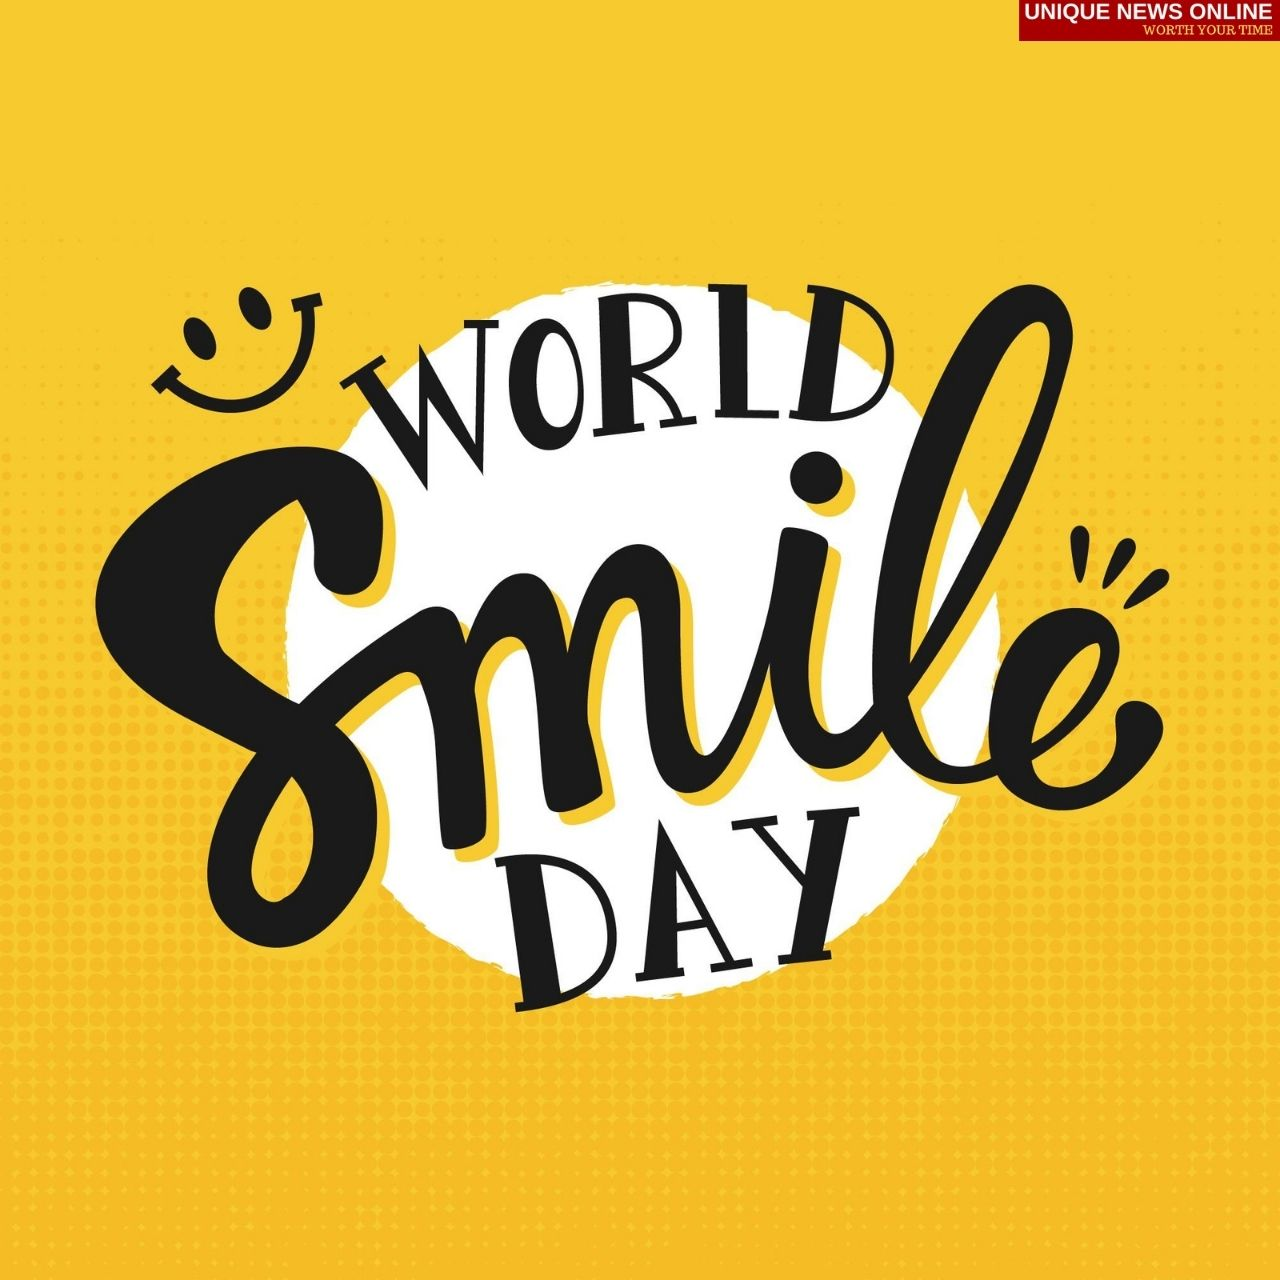 World Smile Day 2021 Quotes, Poster, Wishes, HD Images, Messages, Meme and Gif to Share